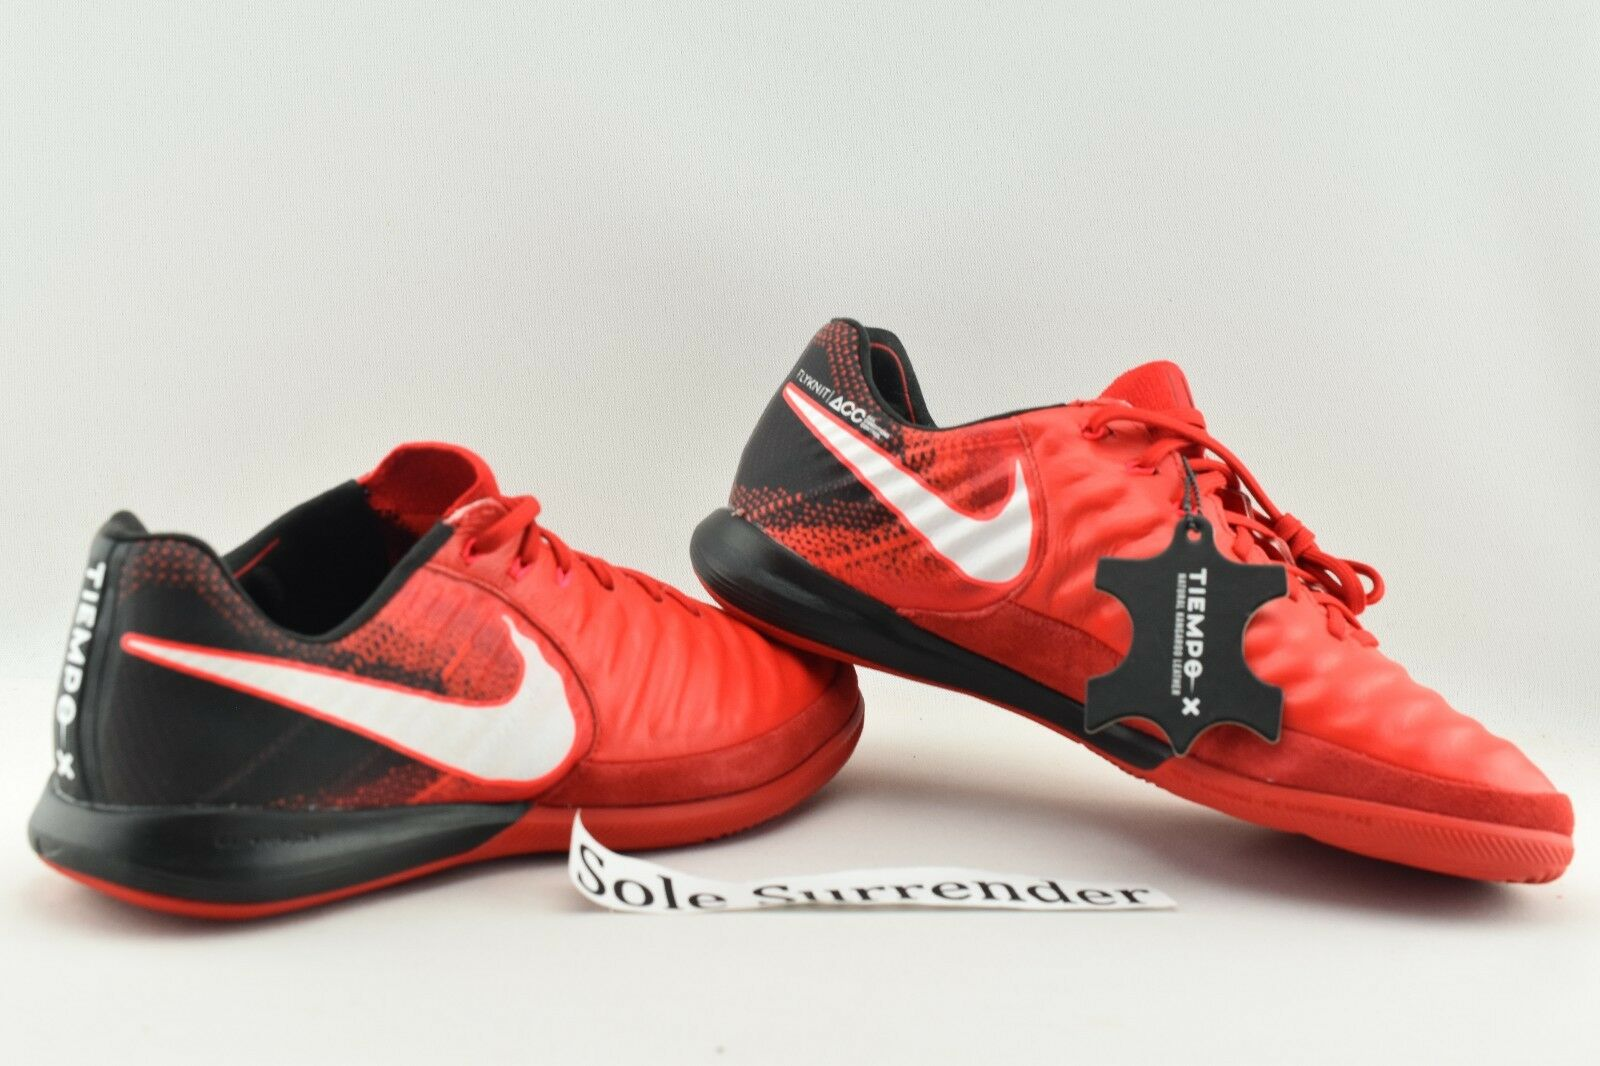 64cb9df6c32 Nike Tiempox Proximo II IC - SIZE 7 - NEW - 897767-616 Indoor Soccer Boots  Black 1 of 7 ...